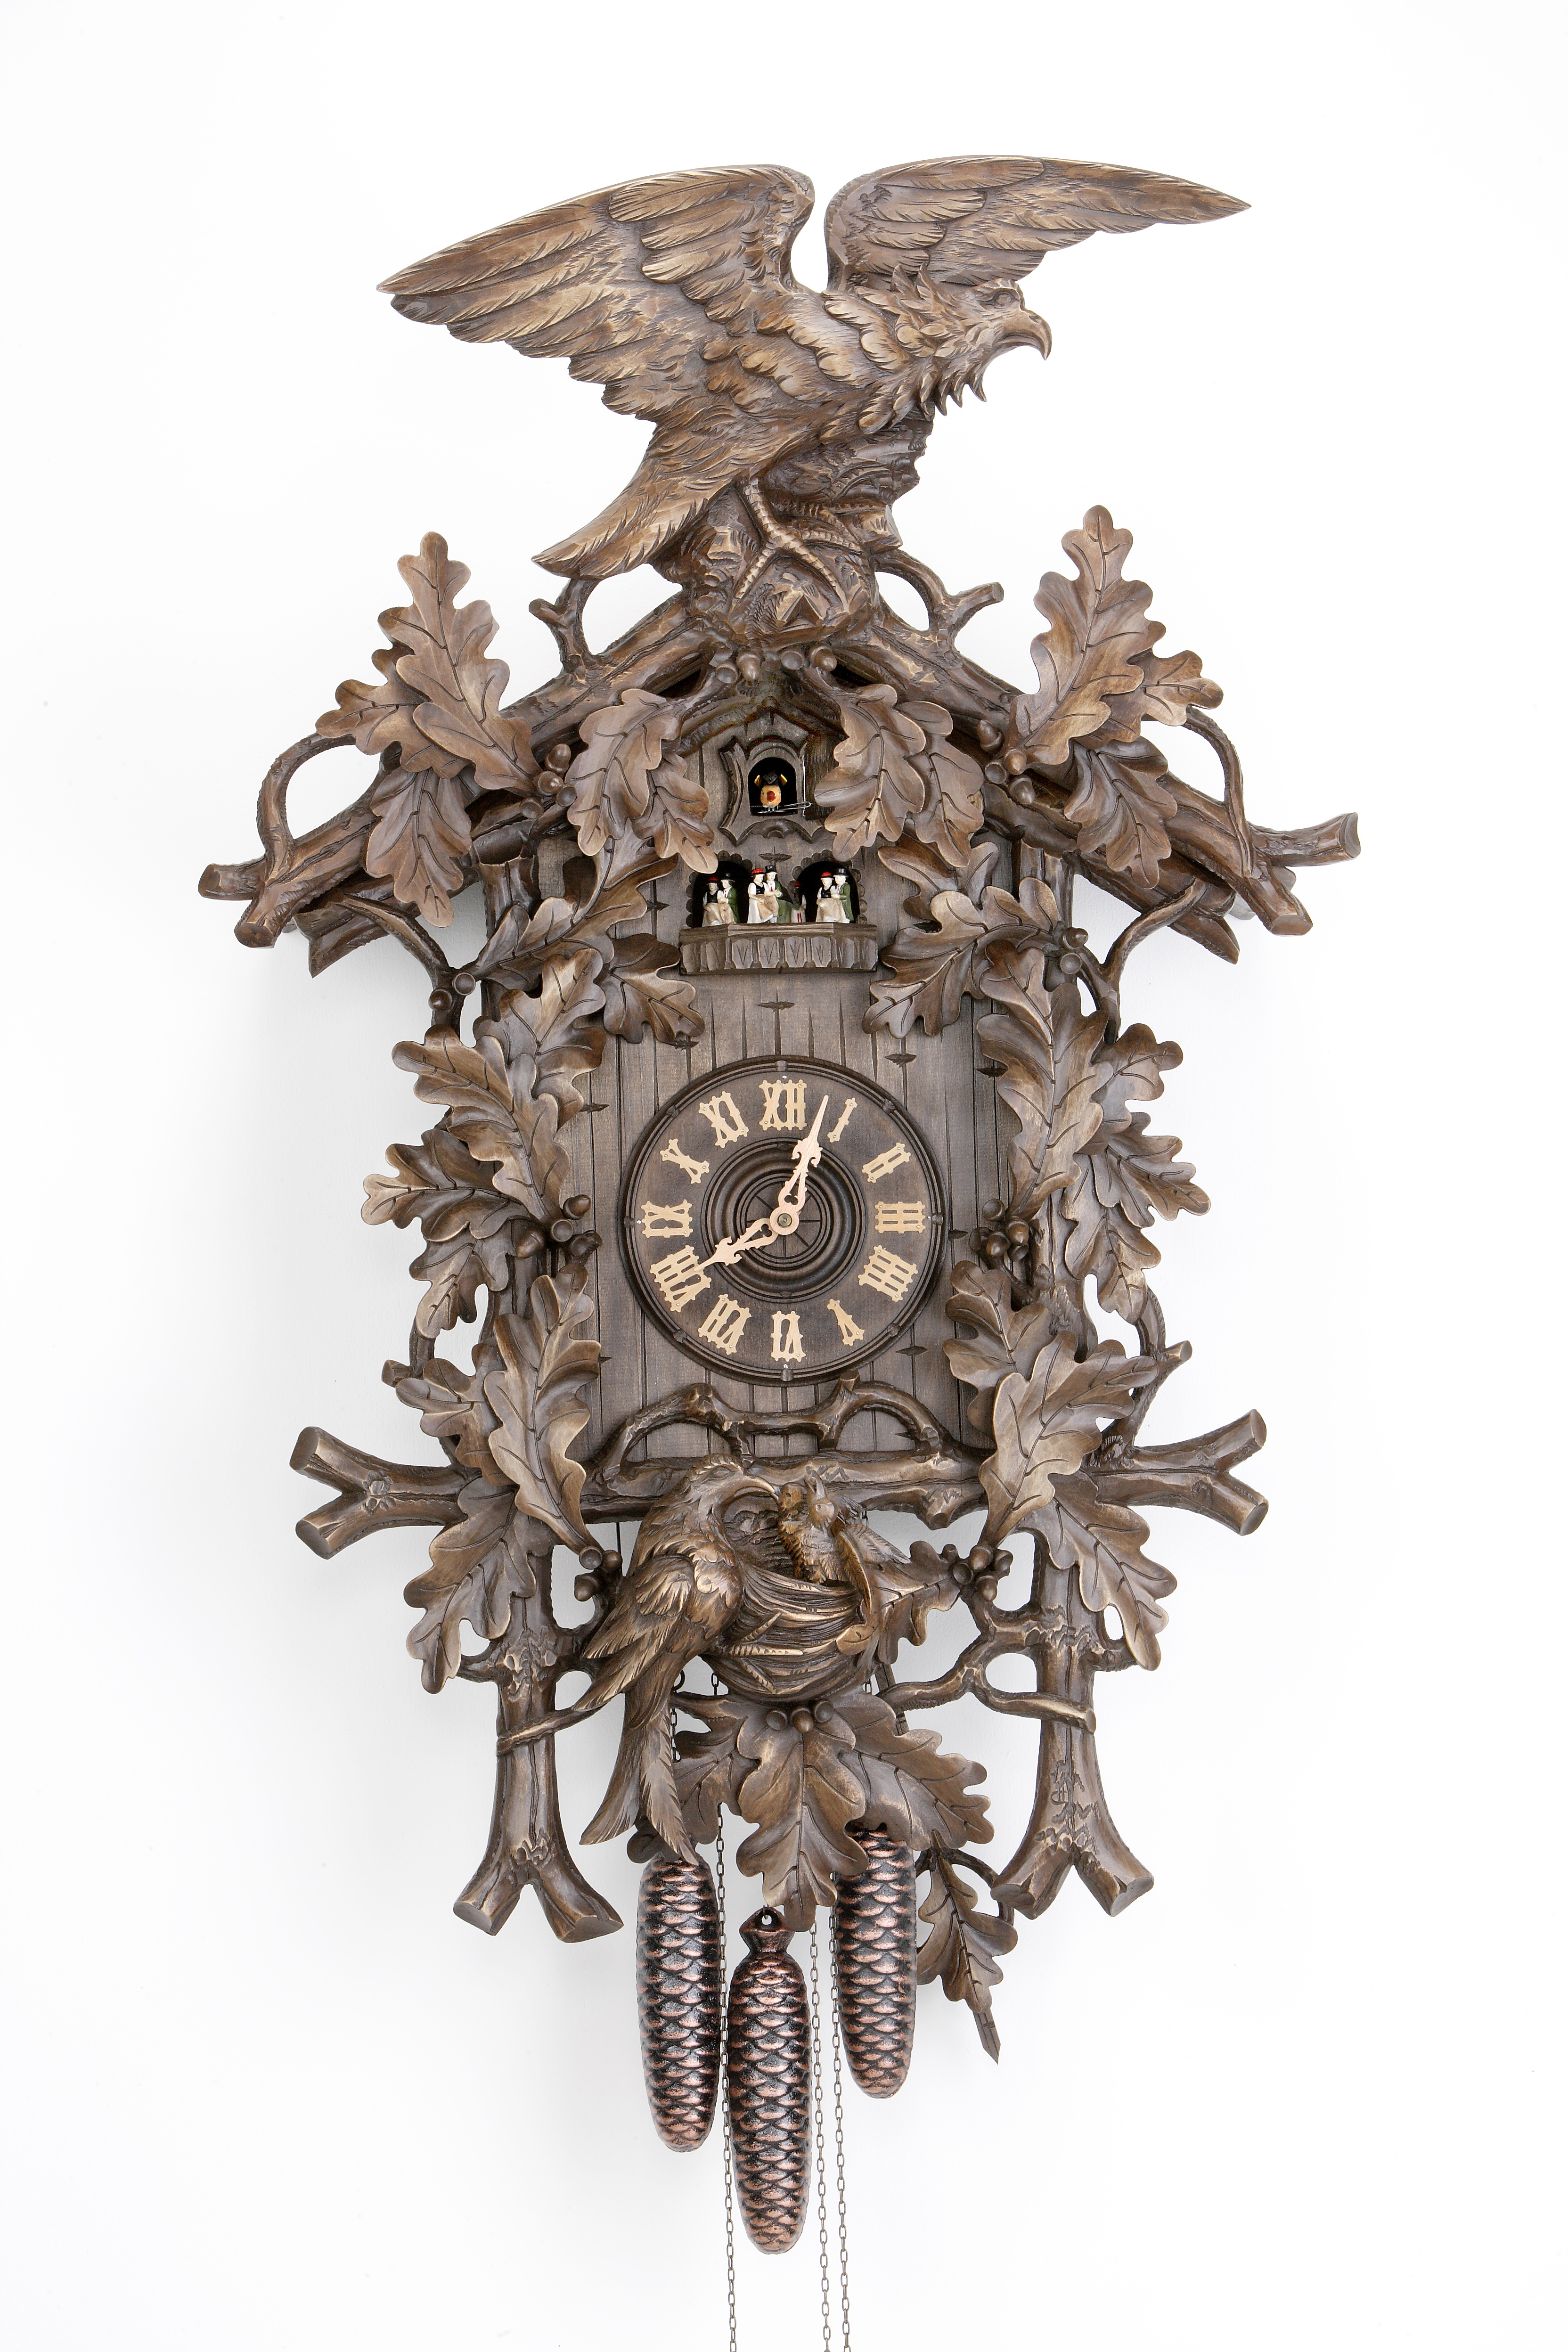 8 Days Music Dancer Cuckoo Clock with eagle and bird family